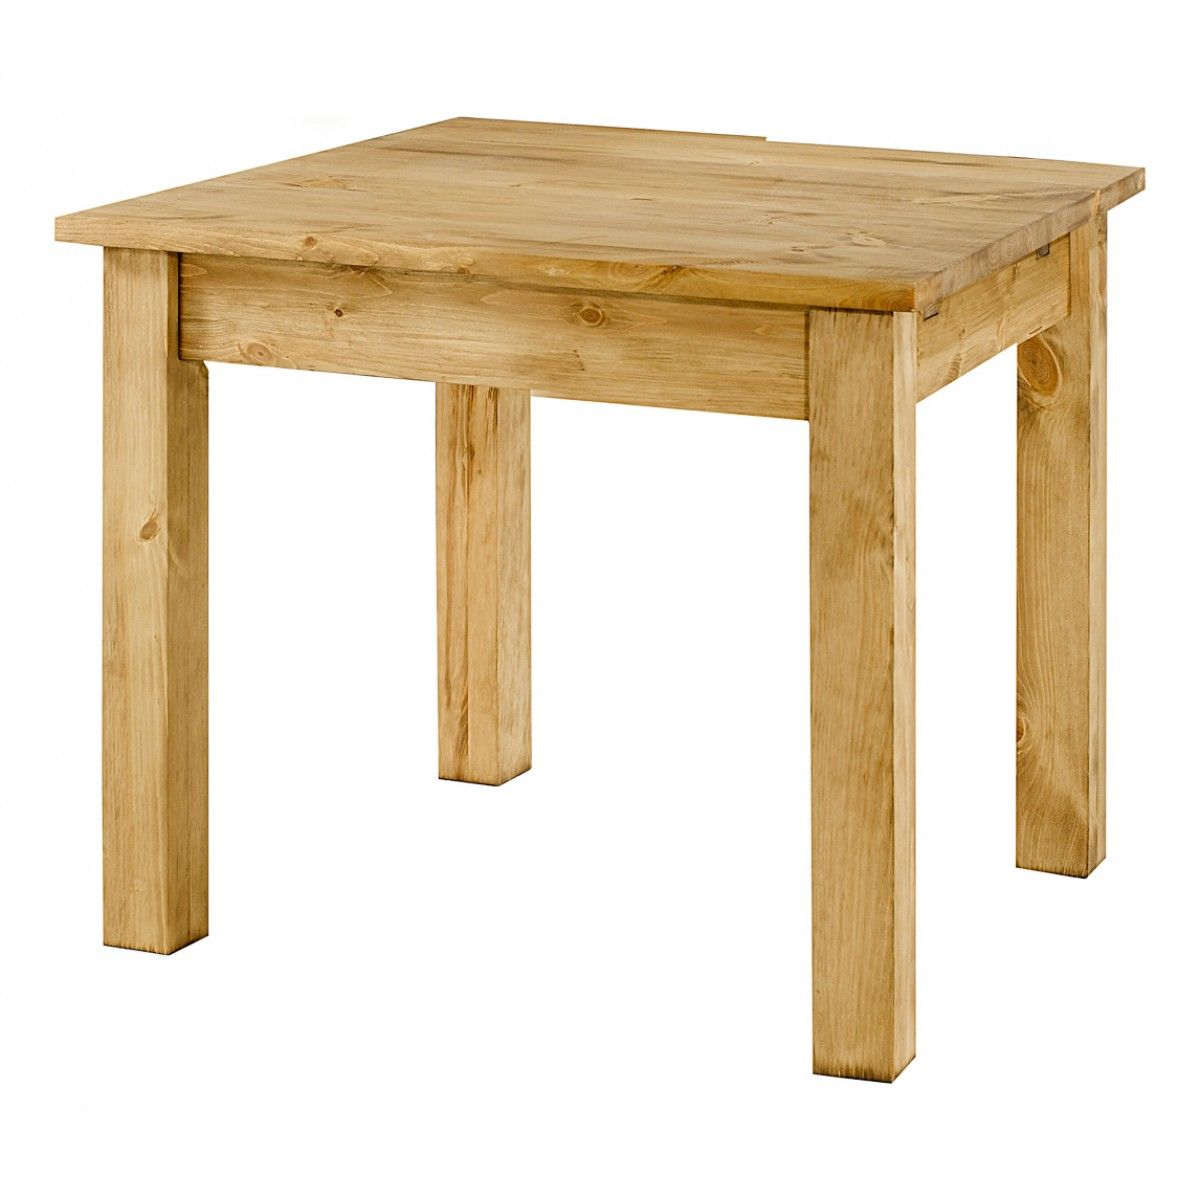 Table Repas Carree 90x90 Cm Allonges En Option Terroir Table Repas Mobilier De Campagne Table Carree